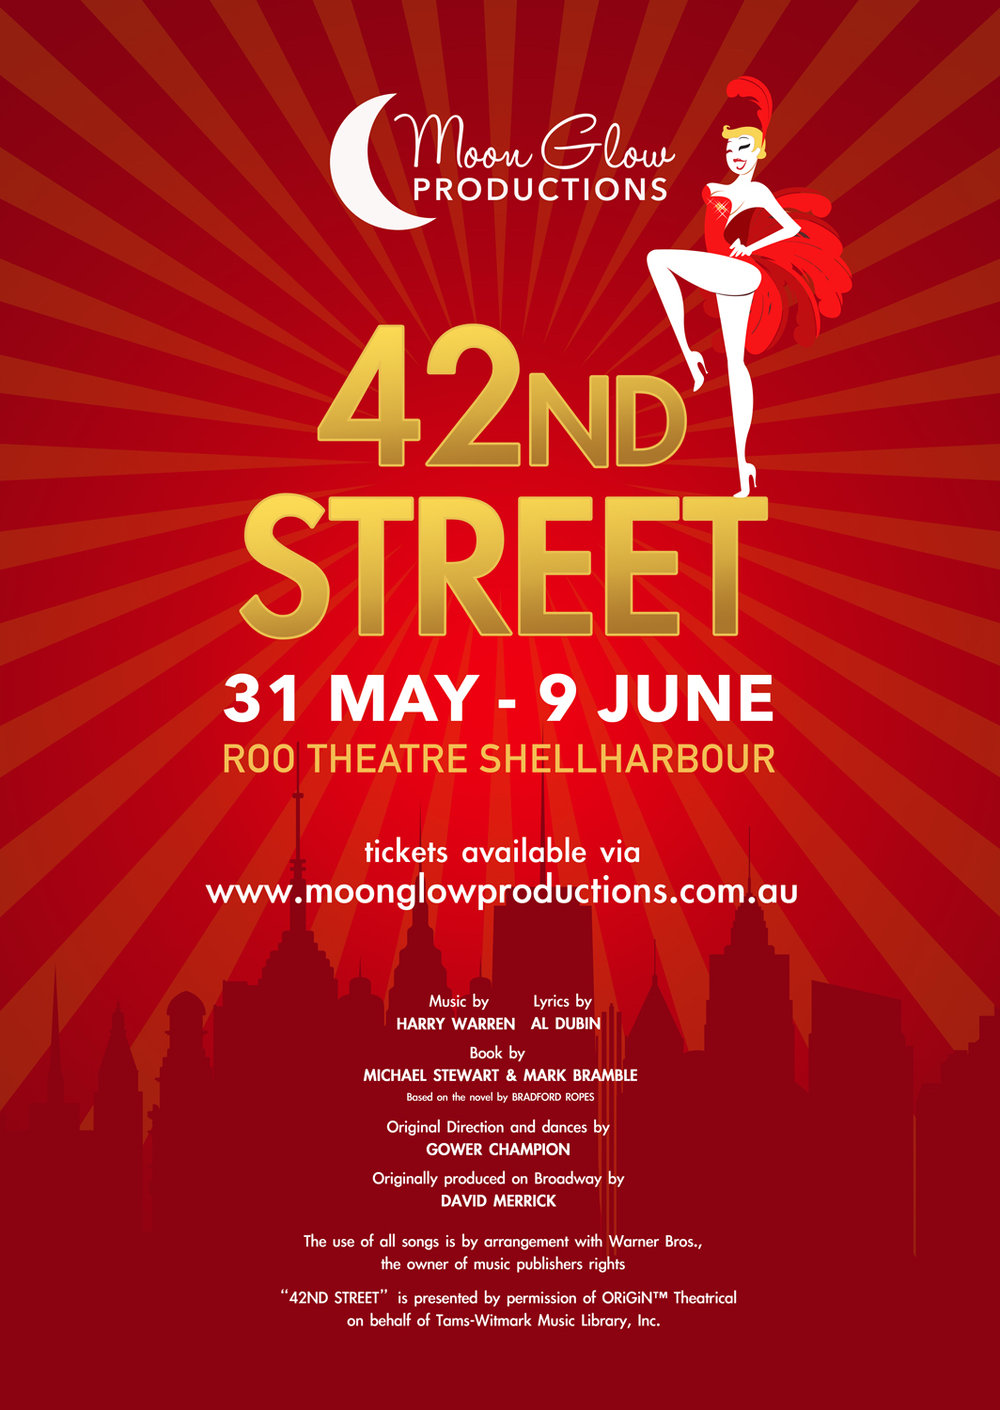 print-42nd-street-poster-red-bling.jpg